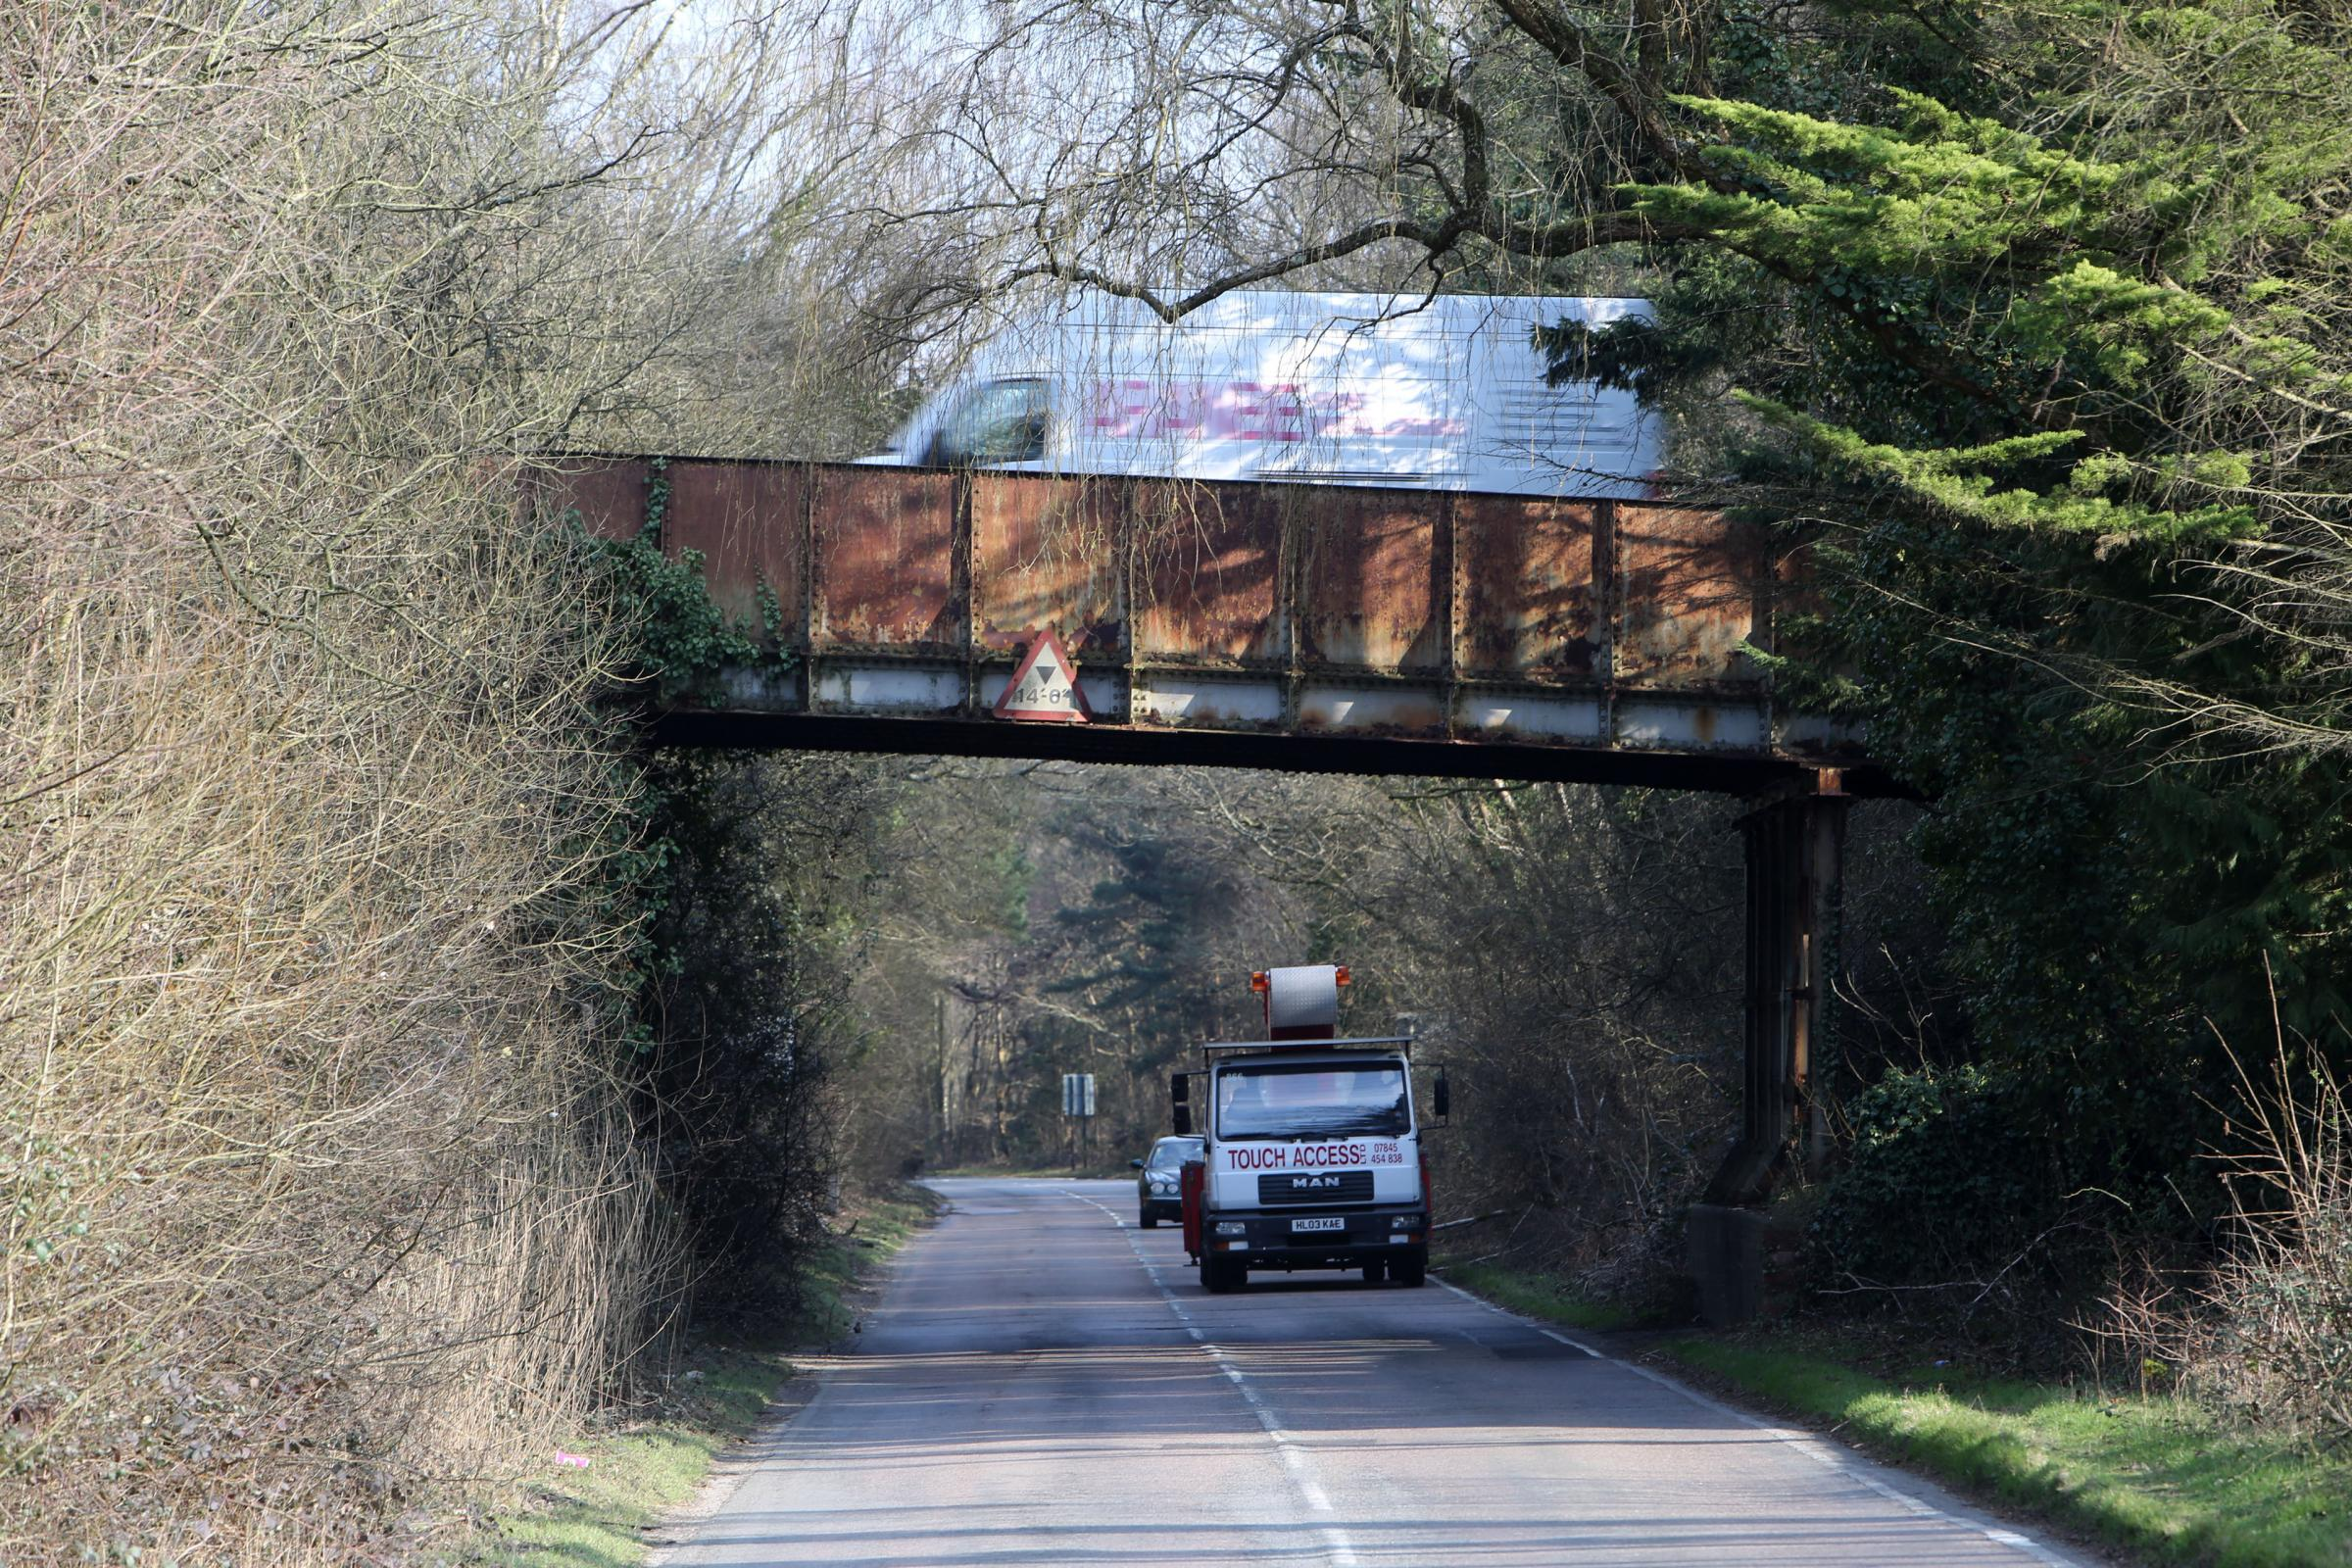 The bridge on the A35 at Holmsley is to be replaced.